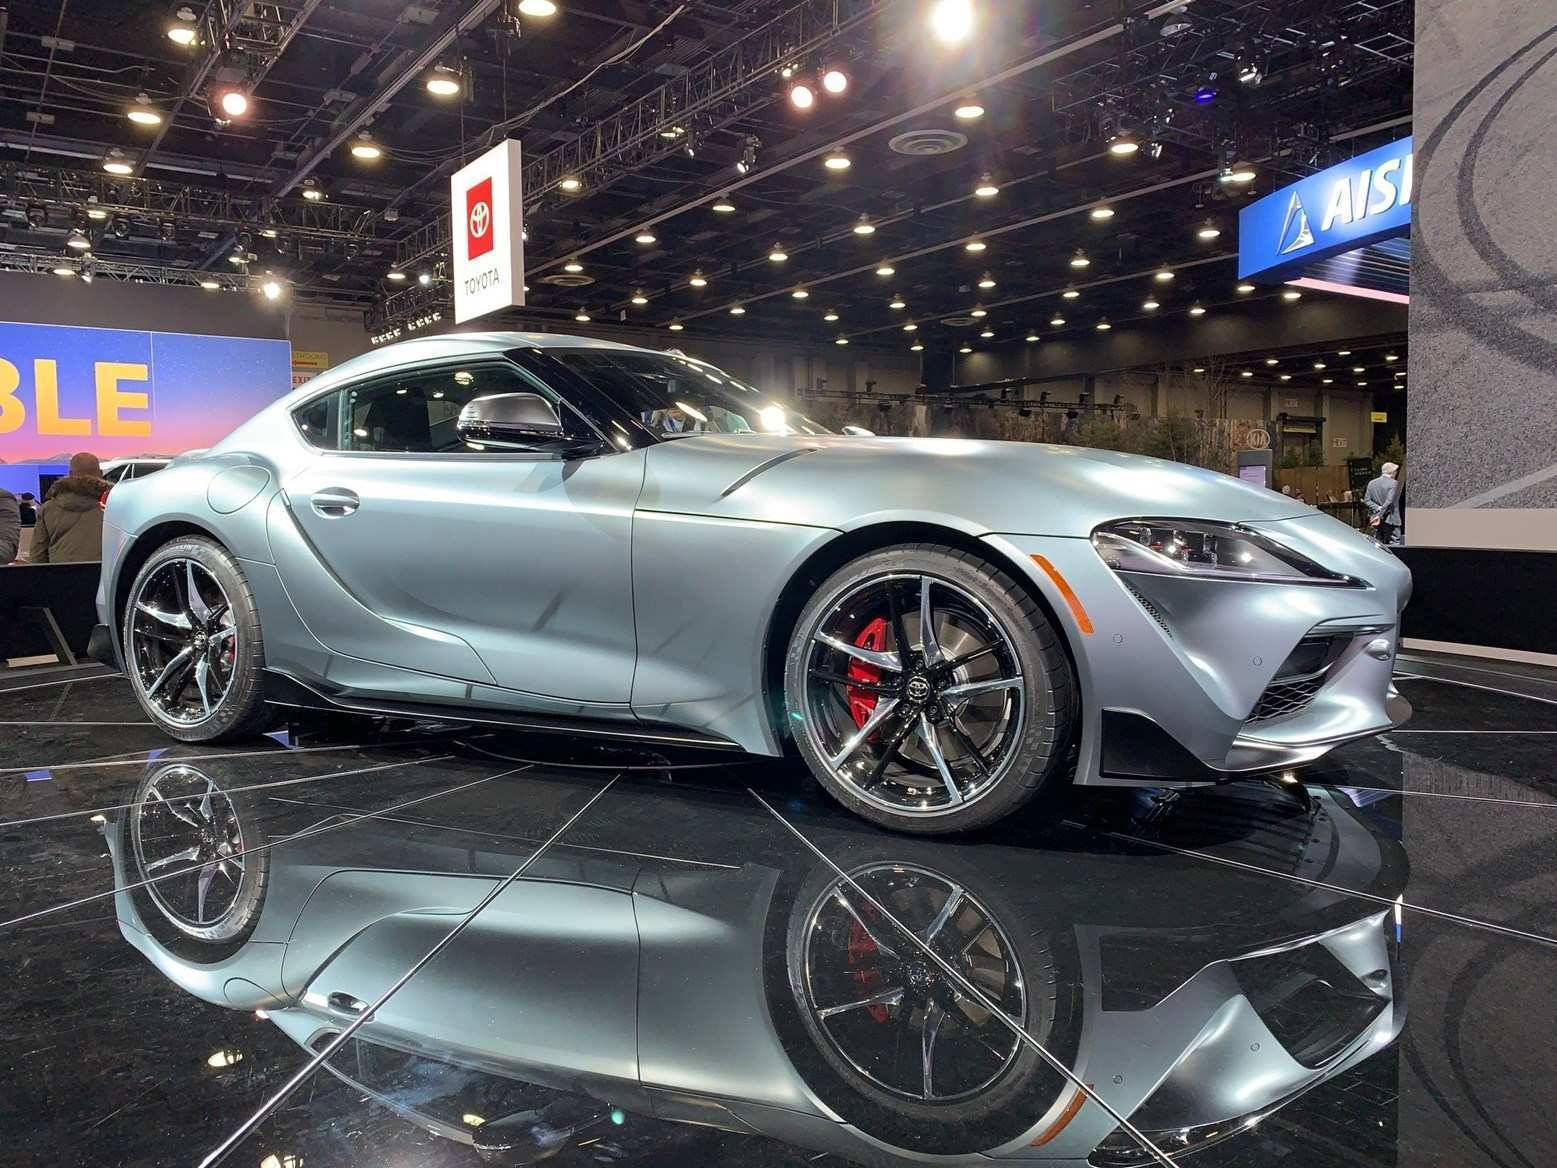 41 Gallery of New Mercedes Detroit Auto Show 2019 Review Release with New Mercedes Detroit Auto Show 2019 Review